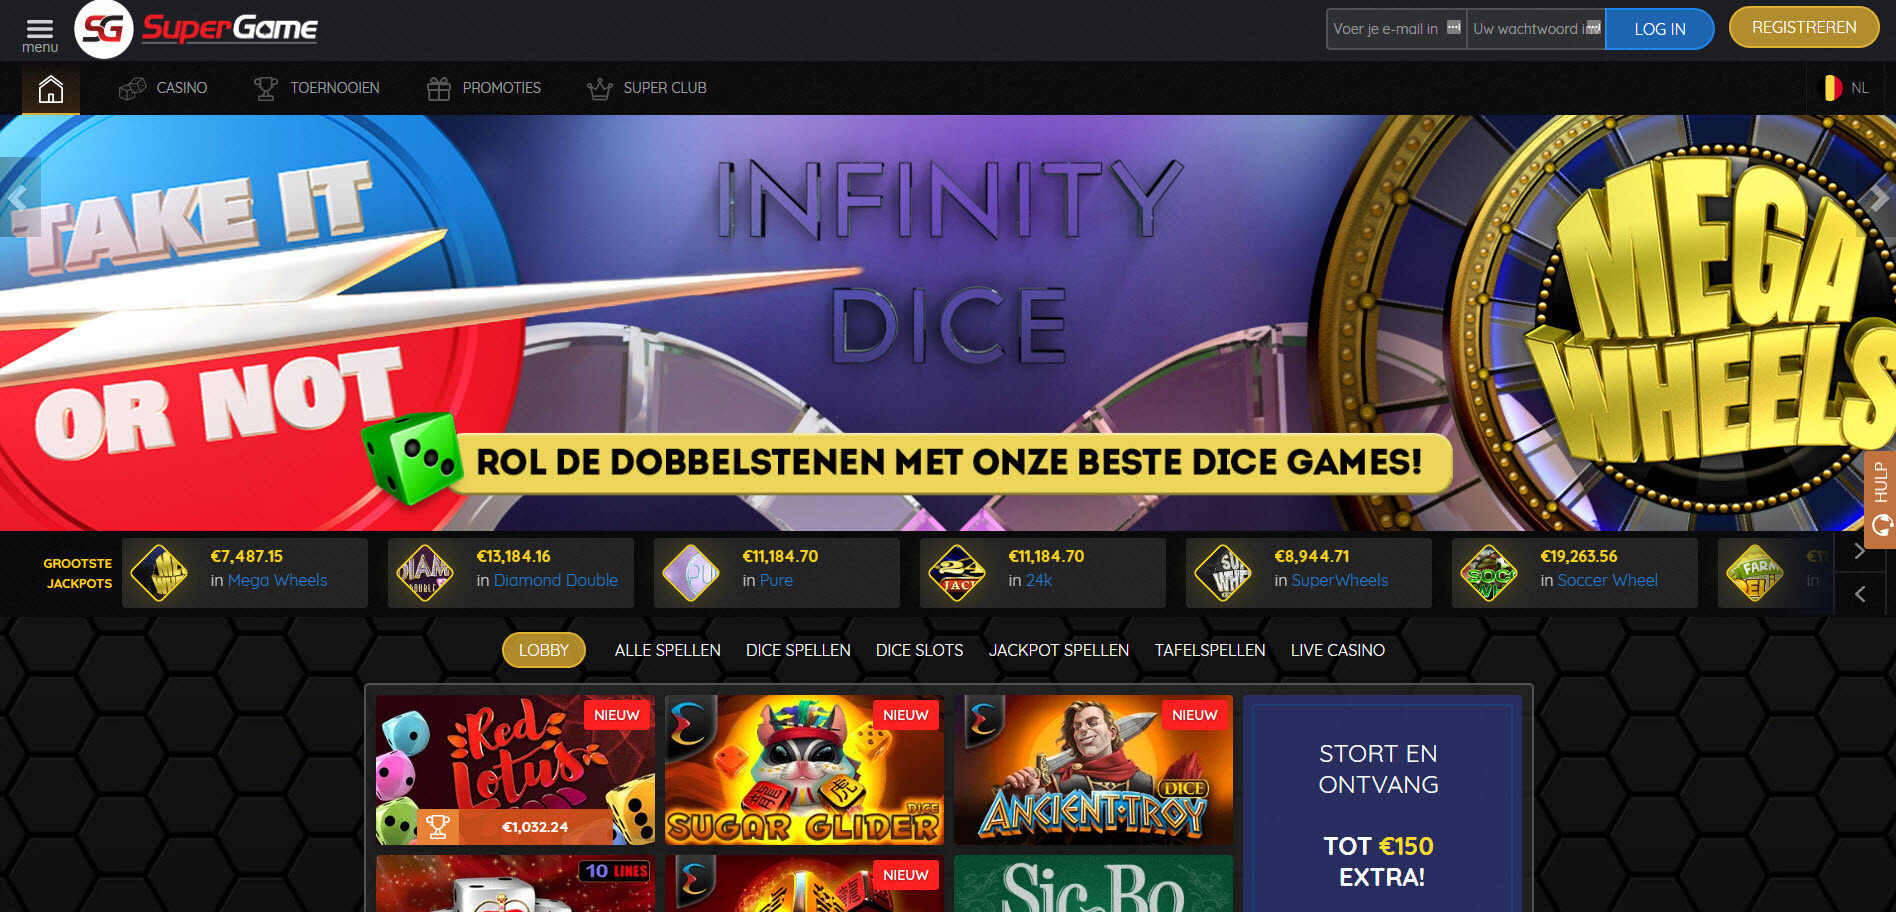 Dice games Supergame